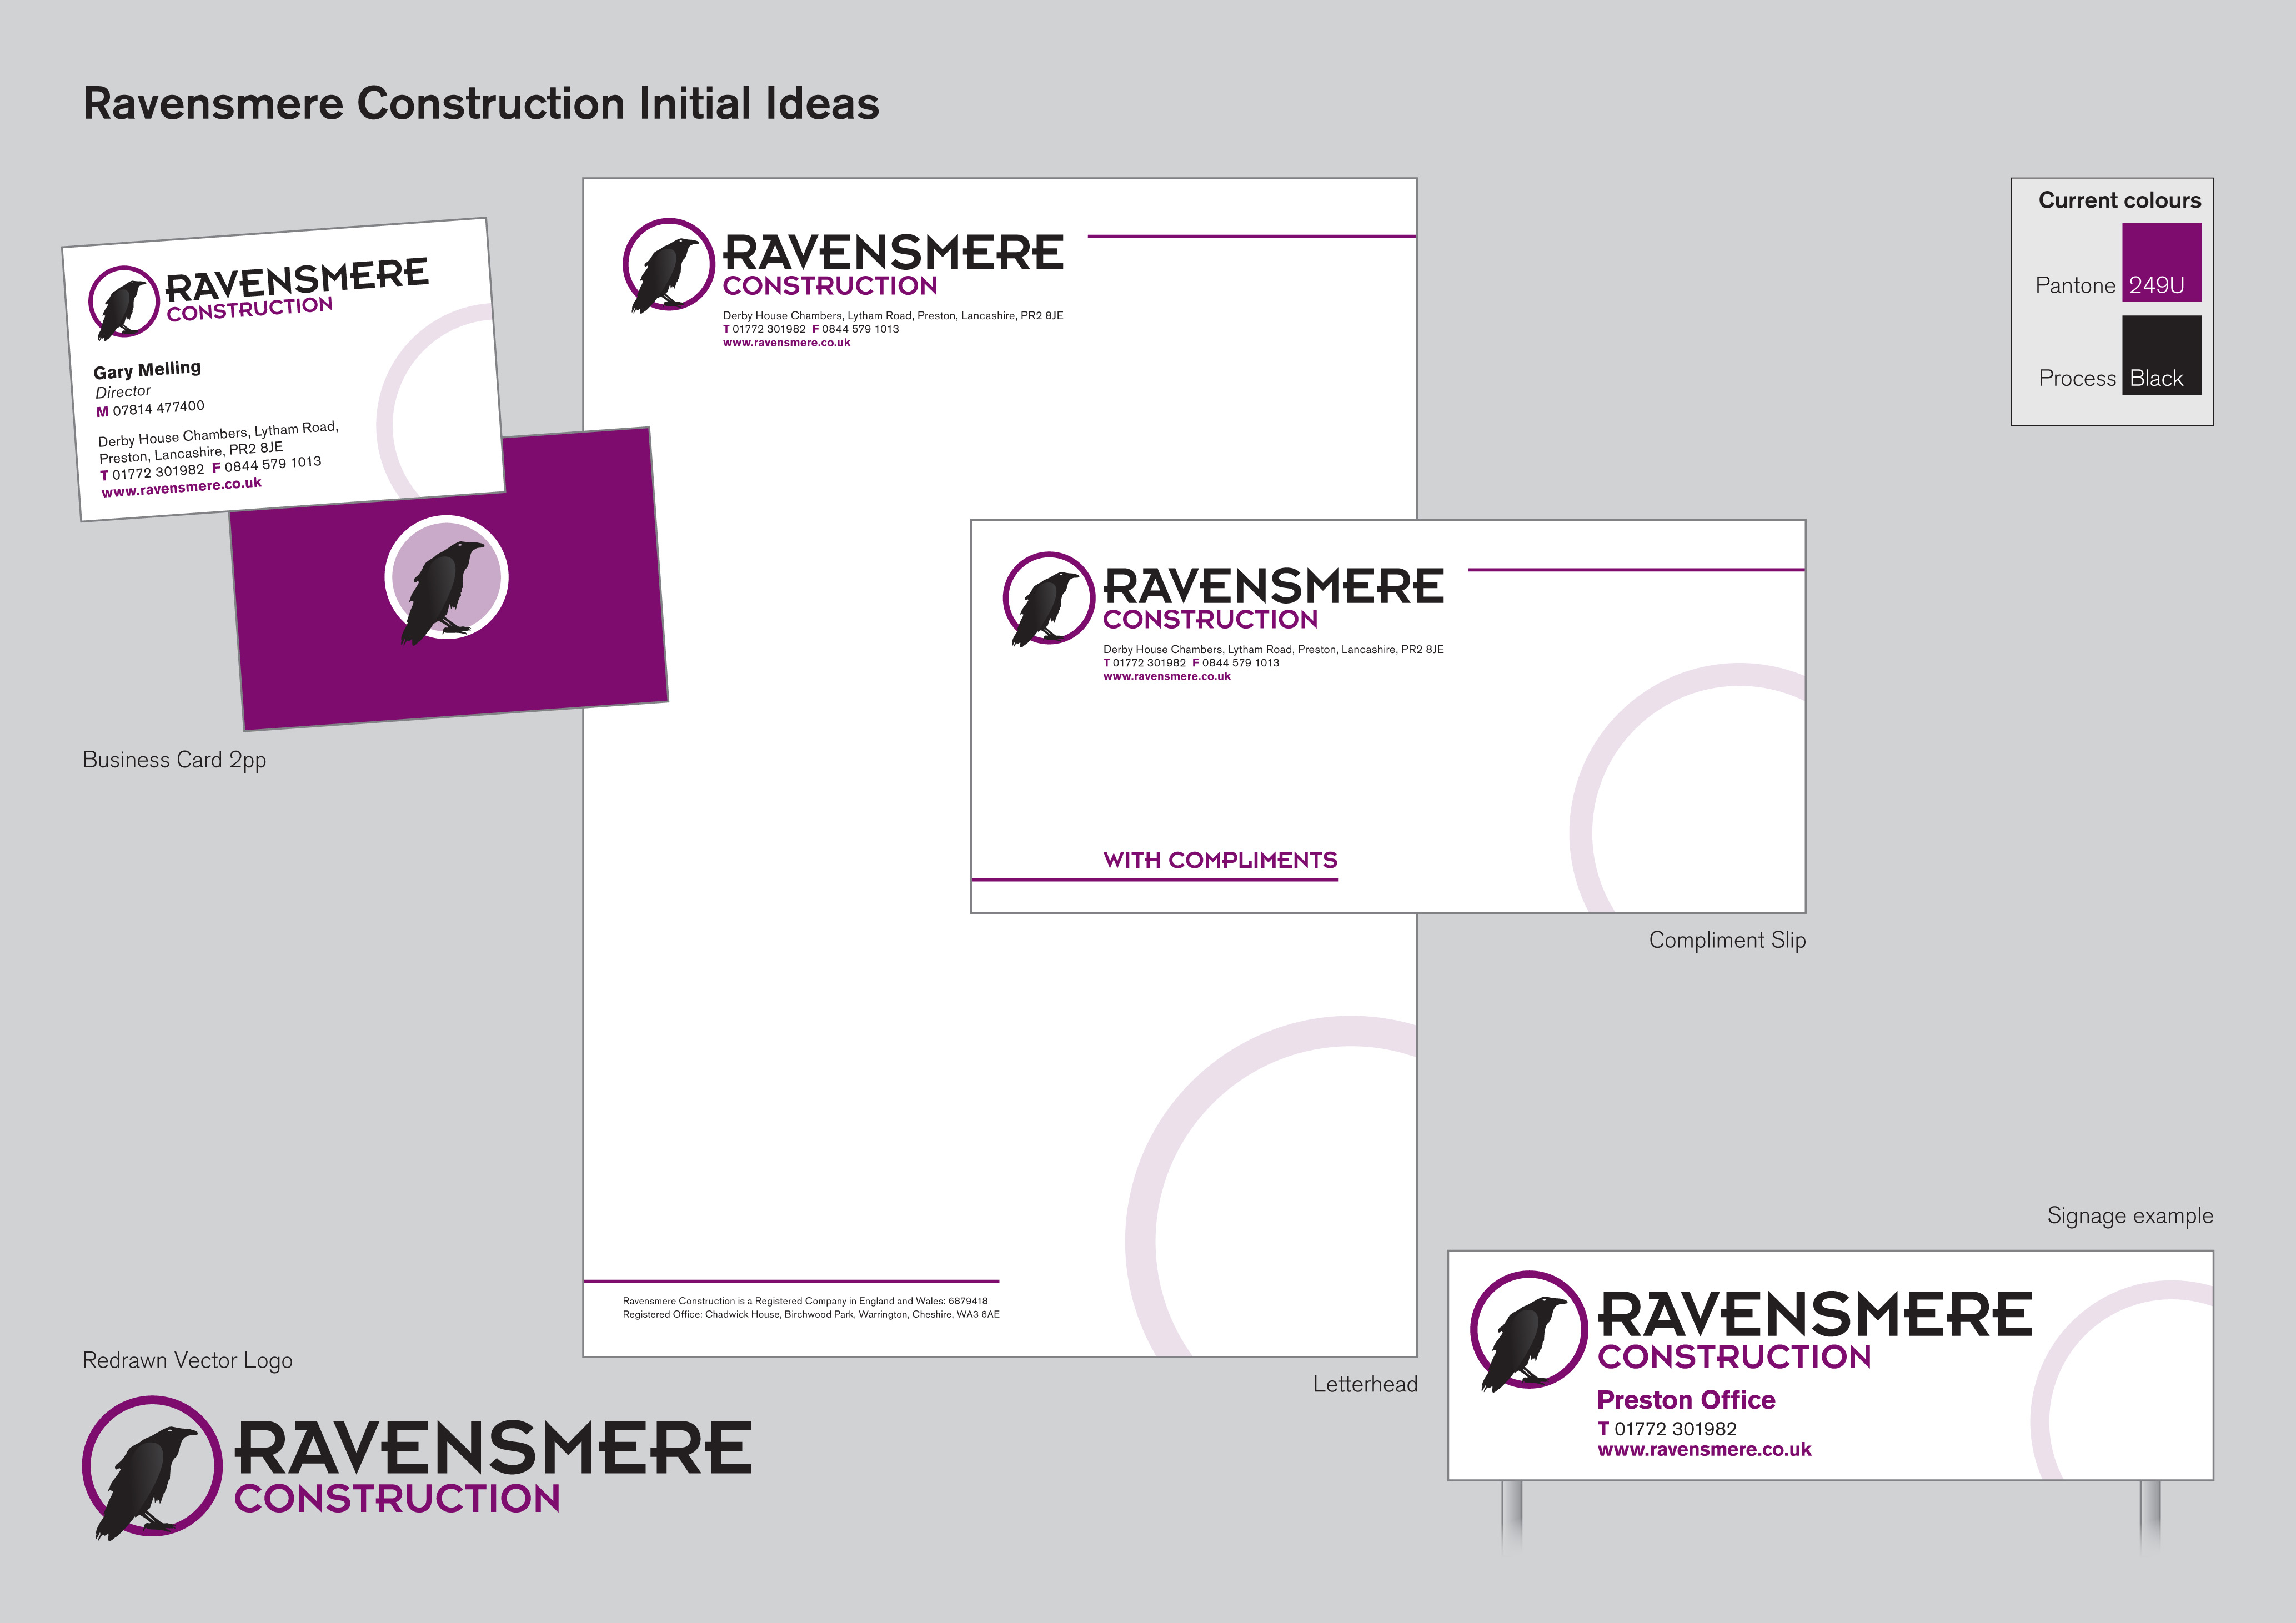 Ravensmere Construction